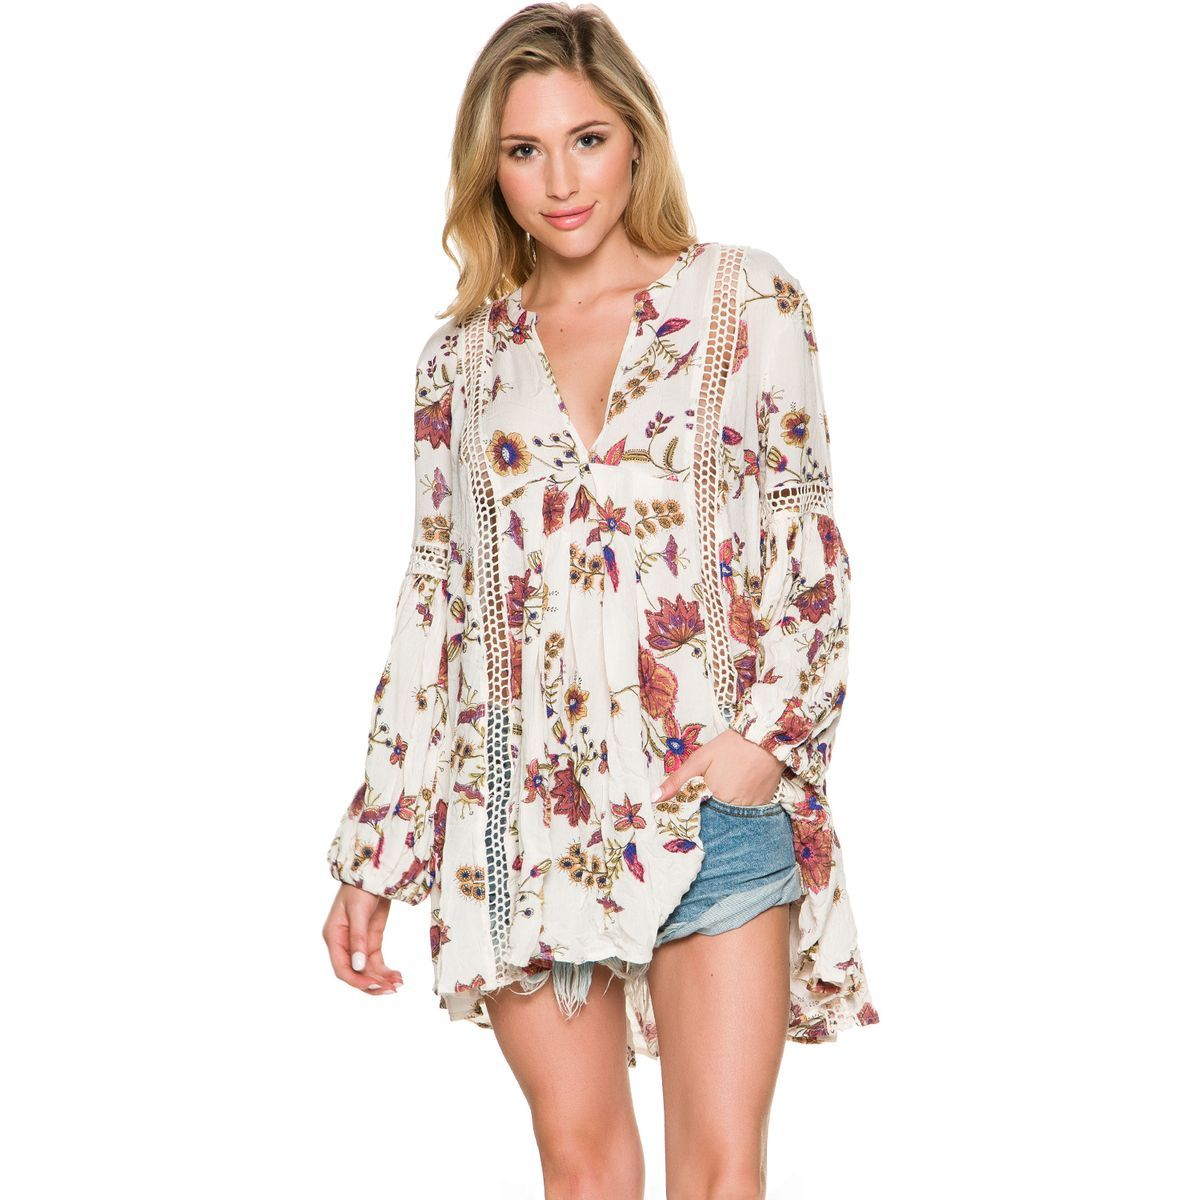 c37c40fdcb3 Free People Just The Two Of Us Printed Tunic. Women's tunic top. Relaxed fit